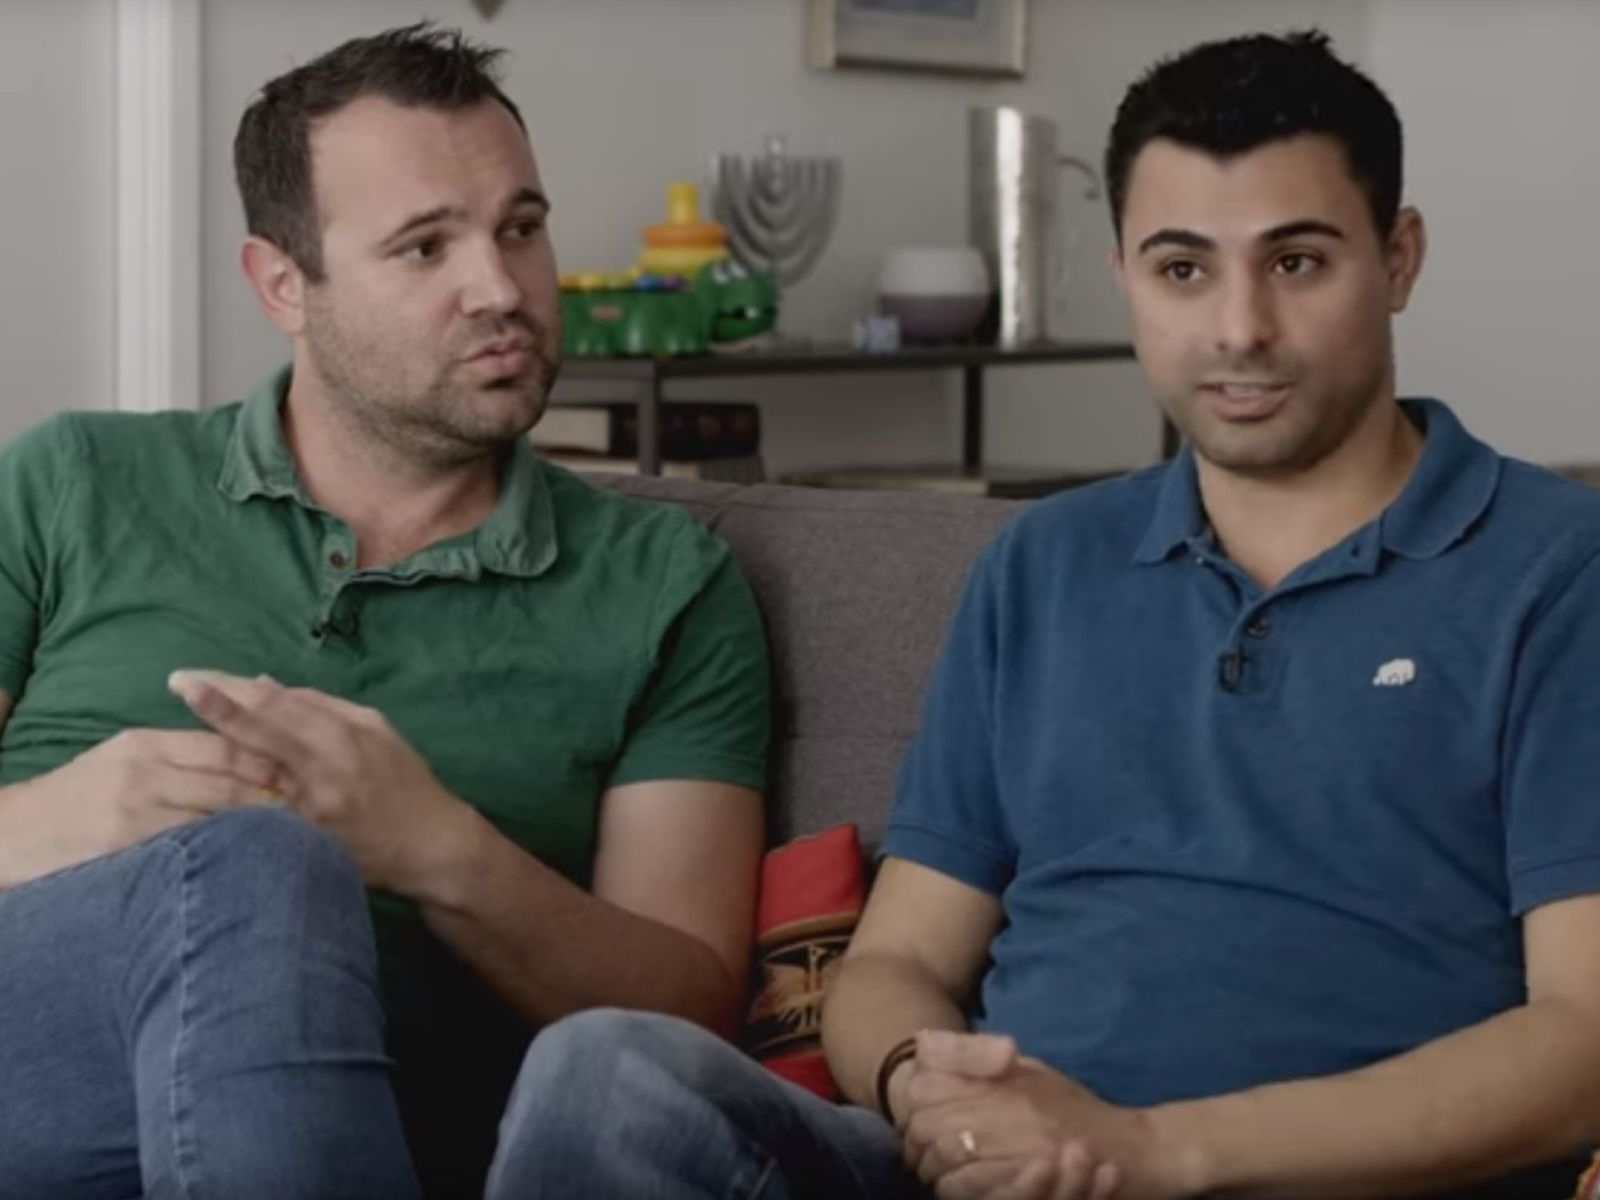 Gay couple's twin babies battle immigration: One's a USA citizen, other isn't